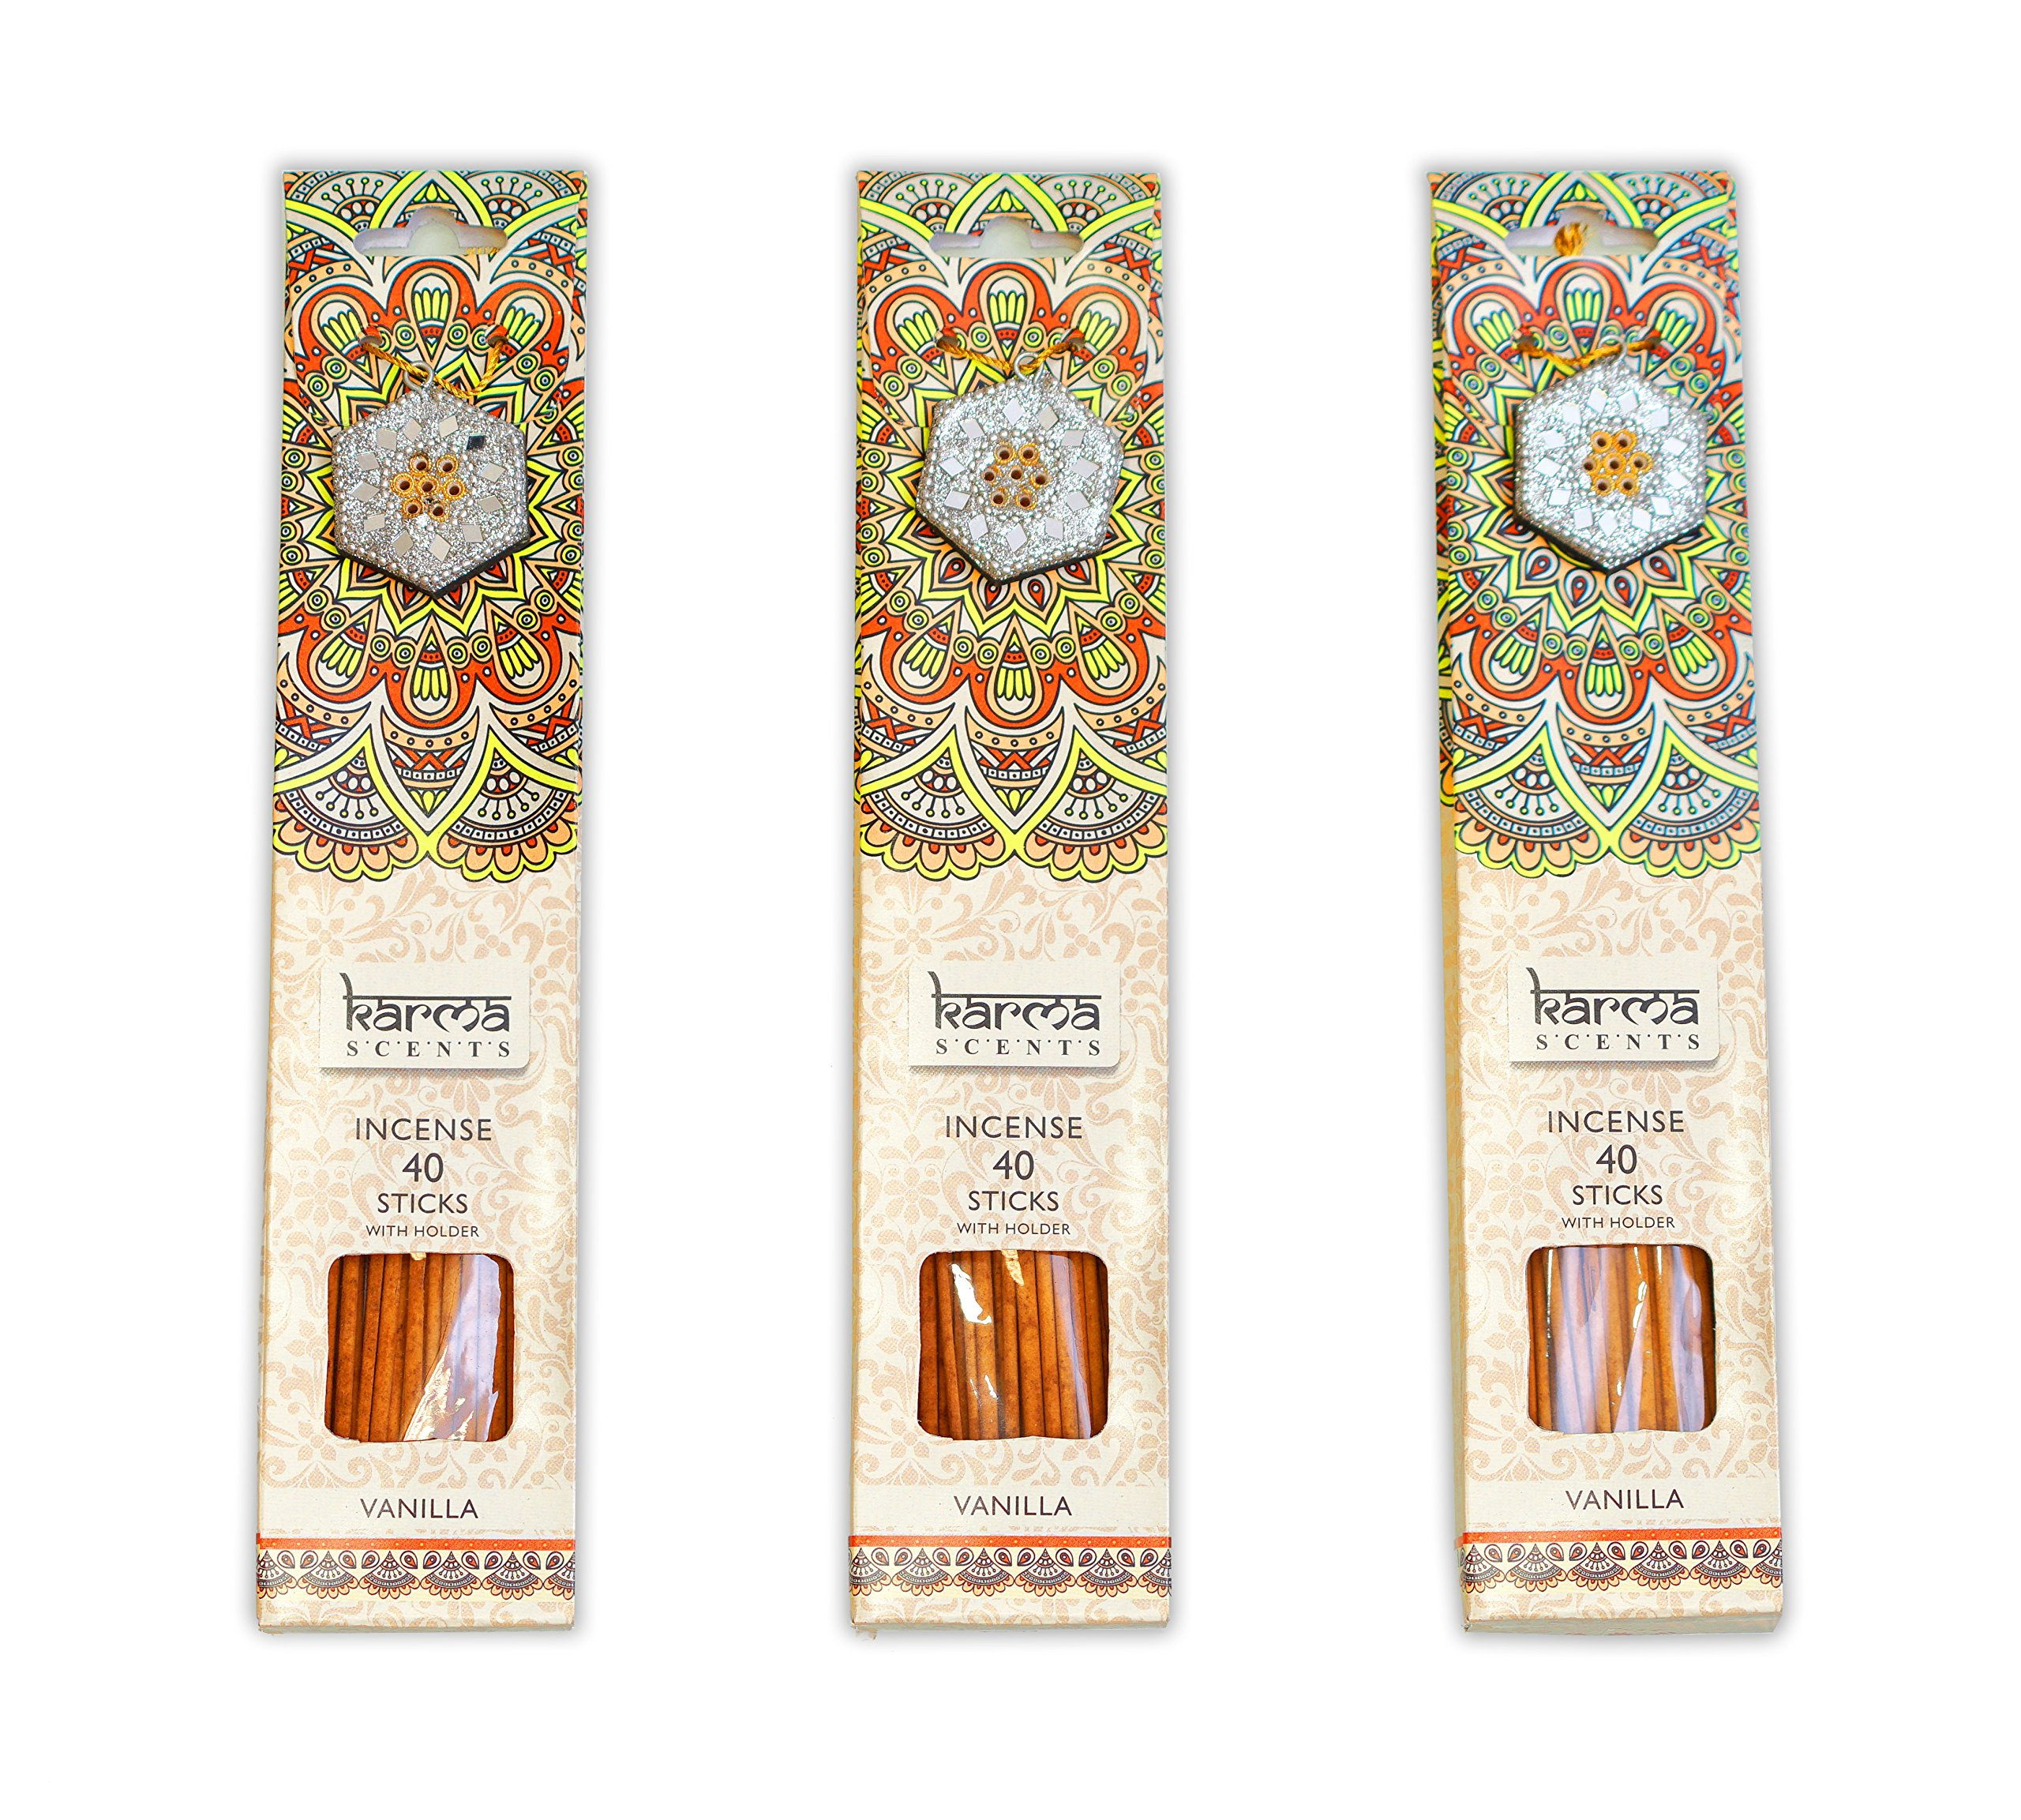 Premium Incense Sticks 3 Pack Gift Set With A Sparkly Holder In Each Box 120 Sticks (Vanilla)